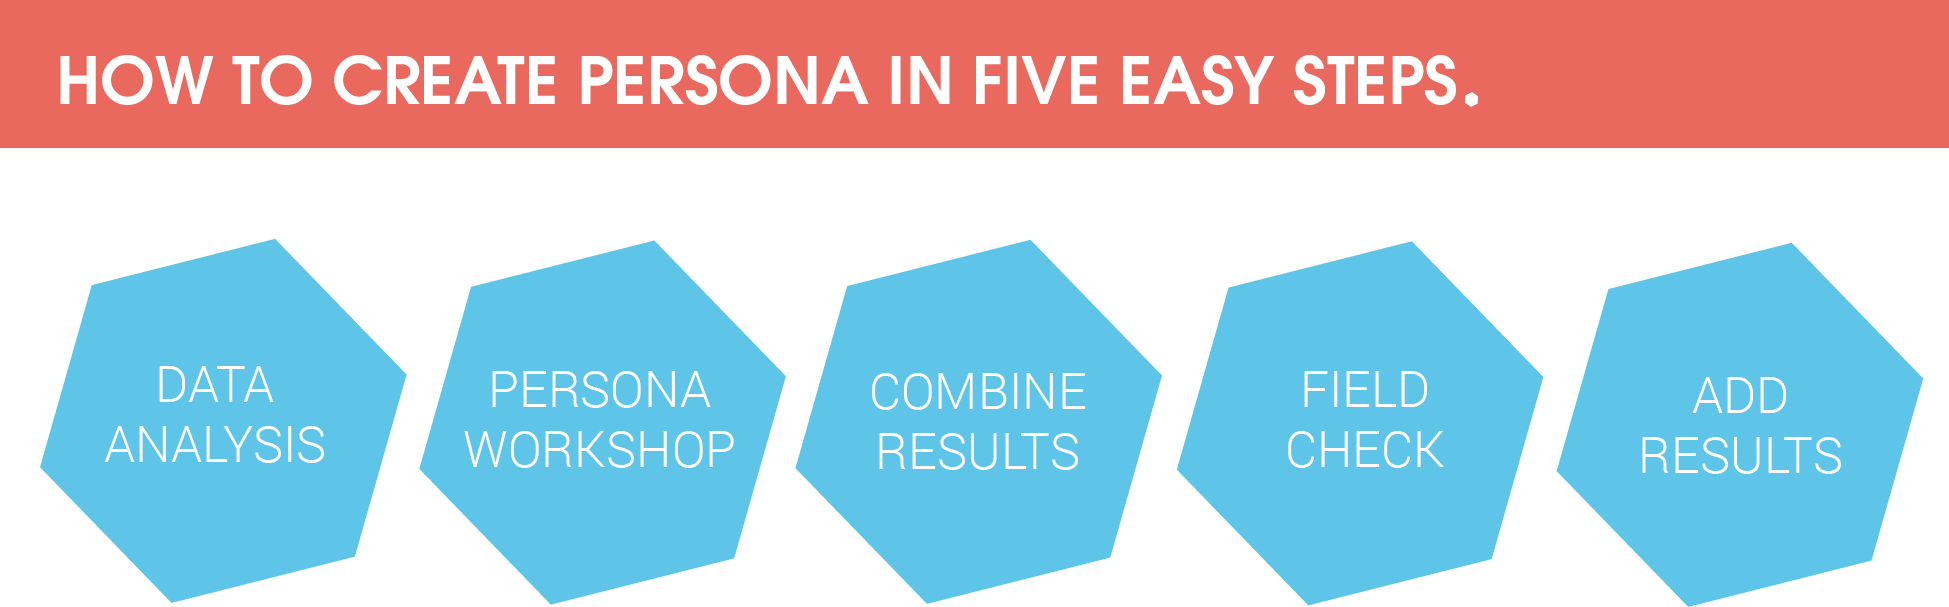 Develop a persona profile in five easy steps:  1. data analysis  2. persona workshop  3. combine results  4. field check  5. add results